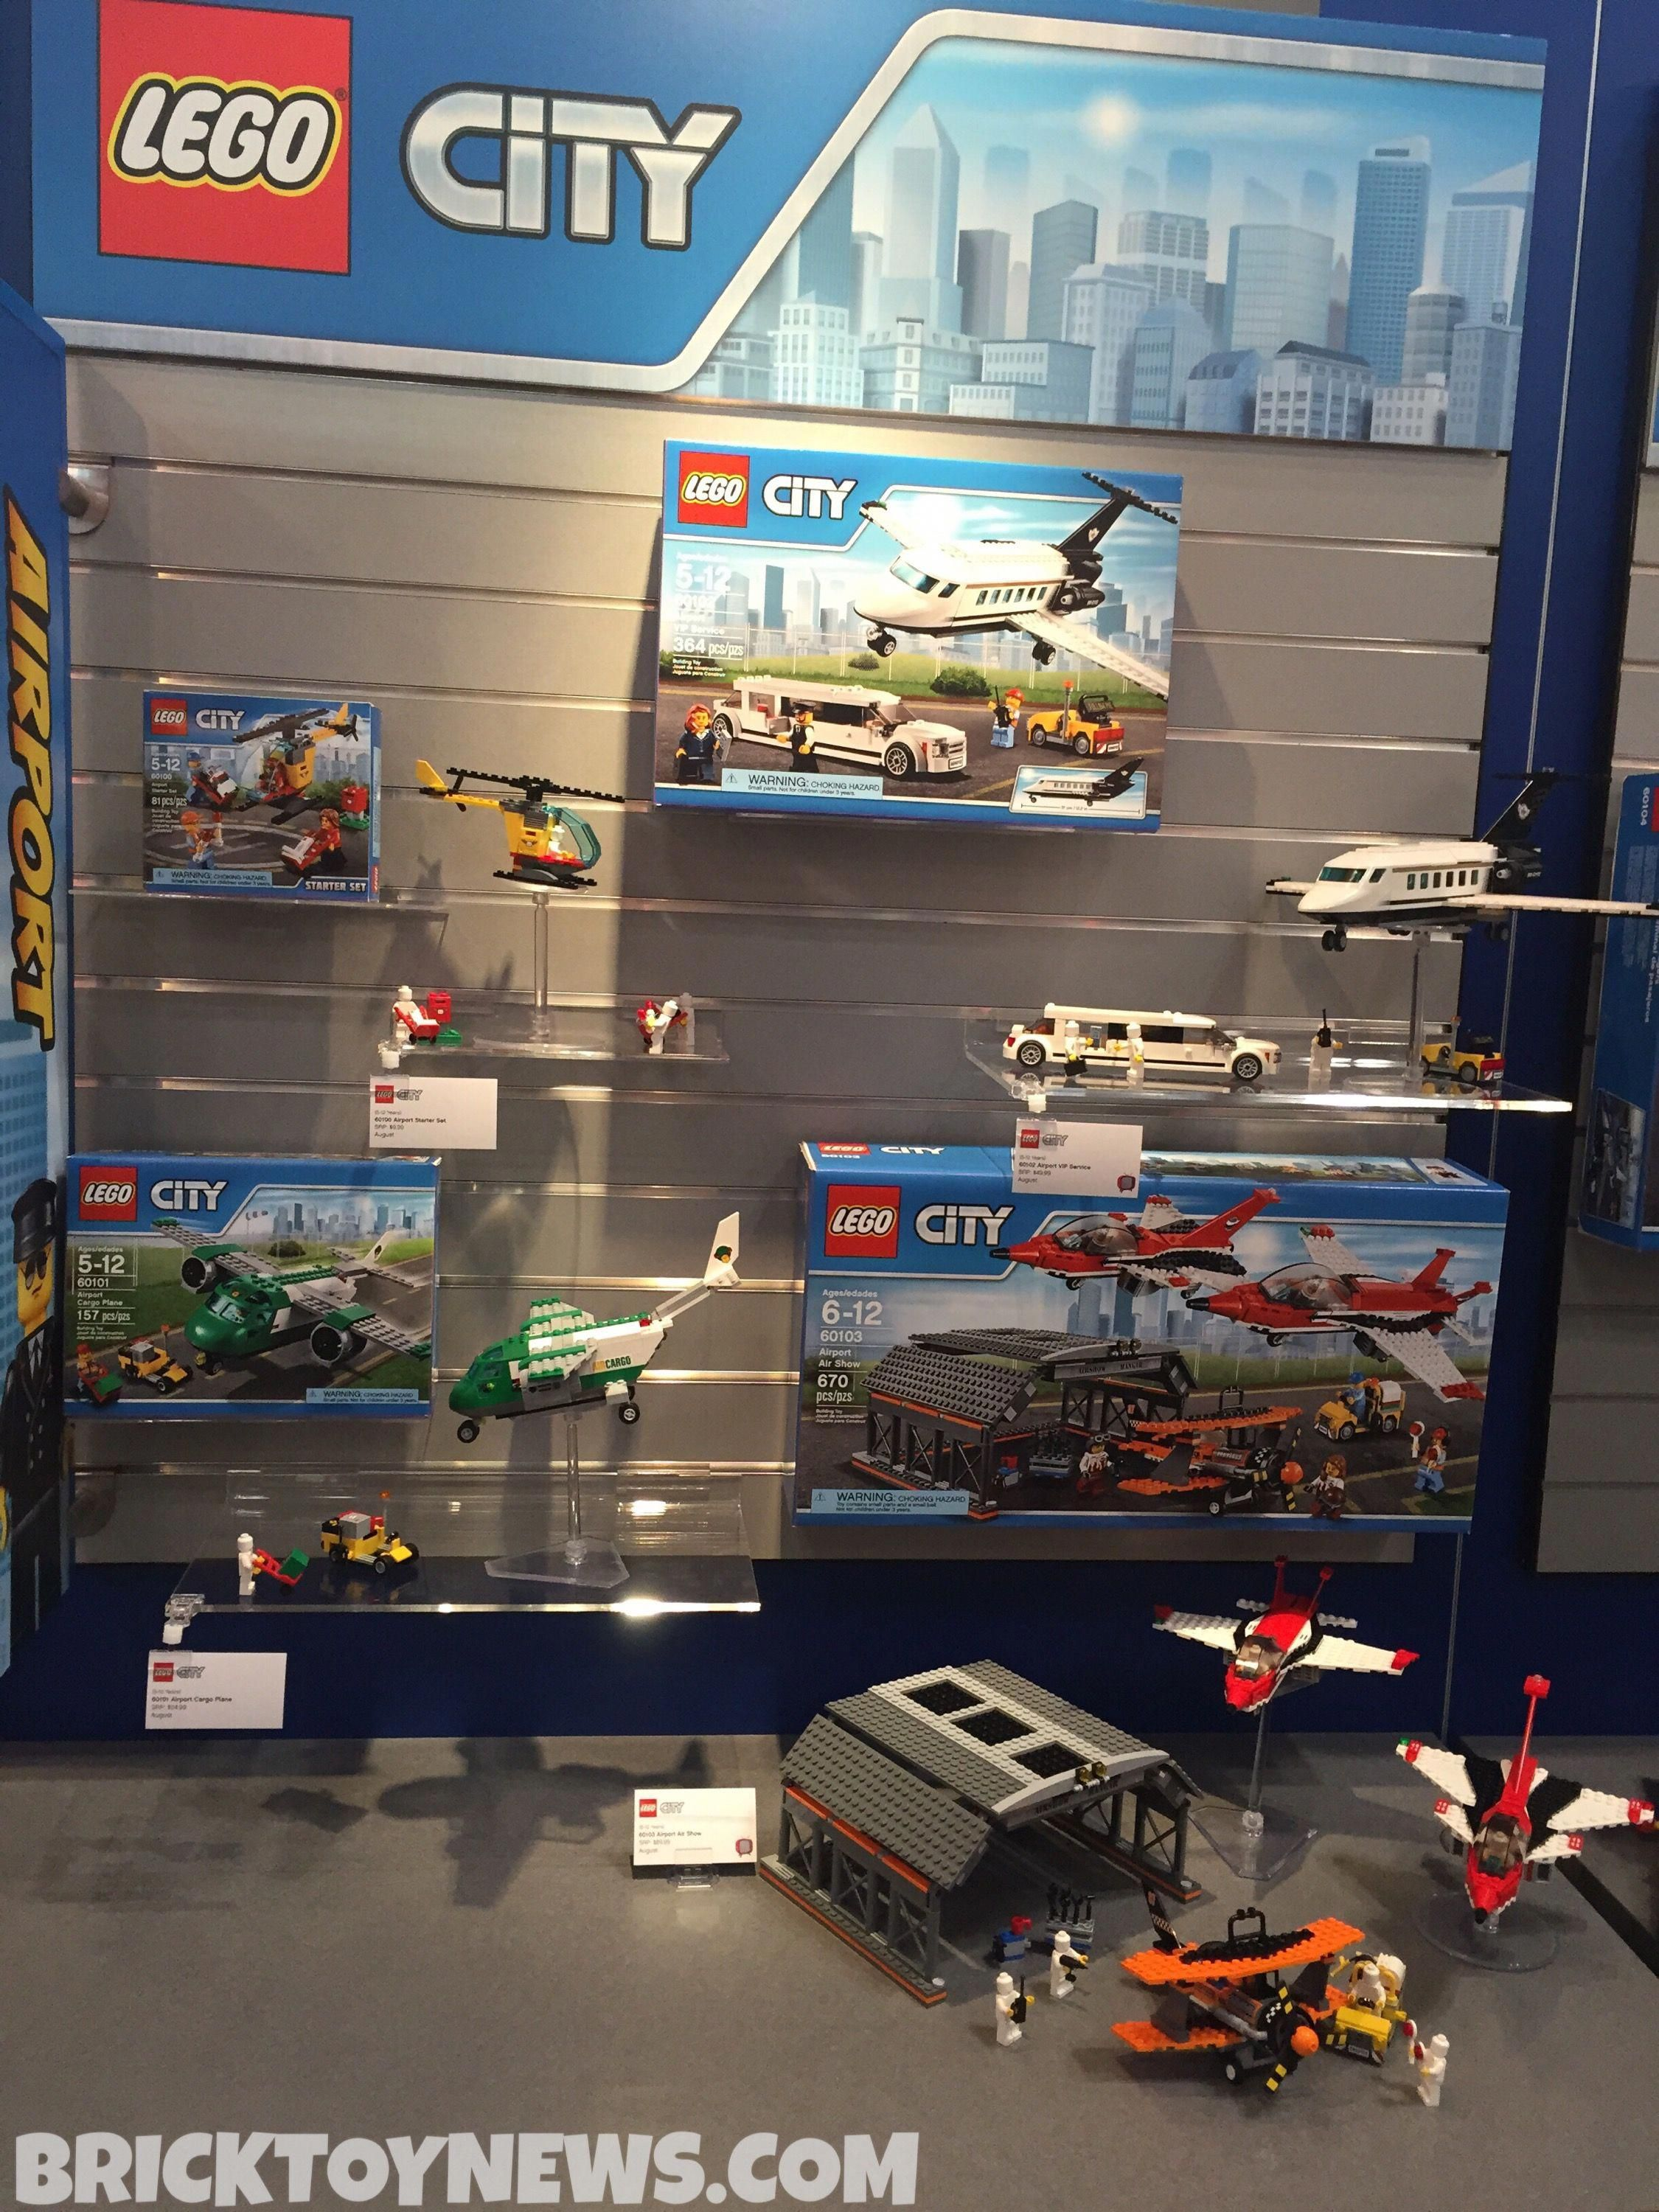 Toy Fair 2016 Lego City Airport Summer 2016 Sets Photos Brick Toy News Advisingplay In 2020 Lego City Airport Lego City Airport City